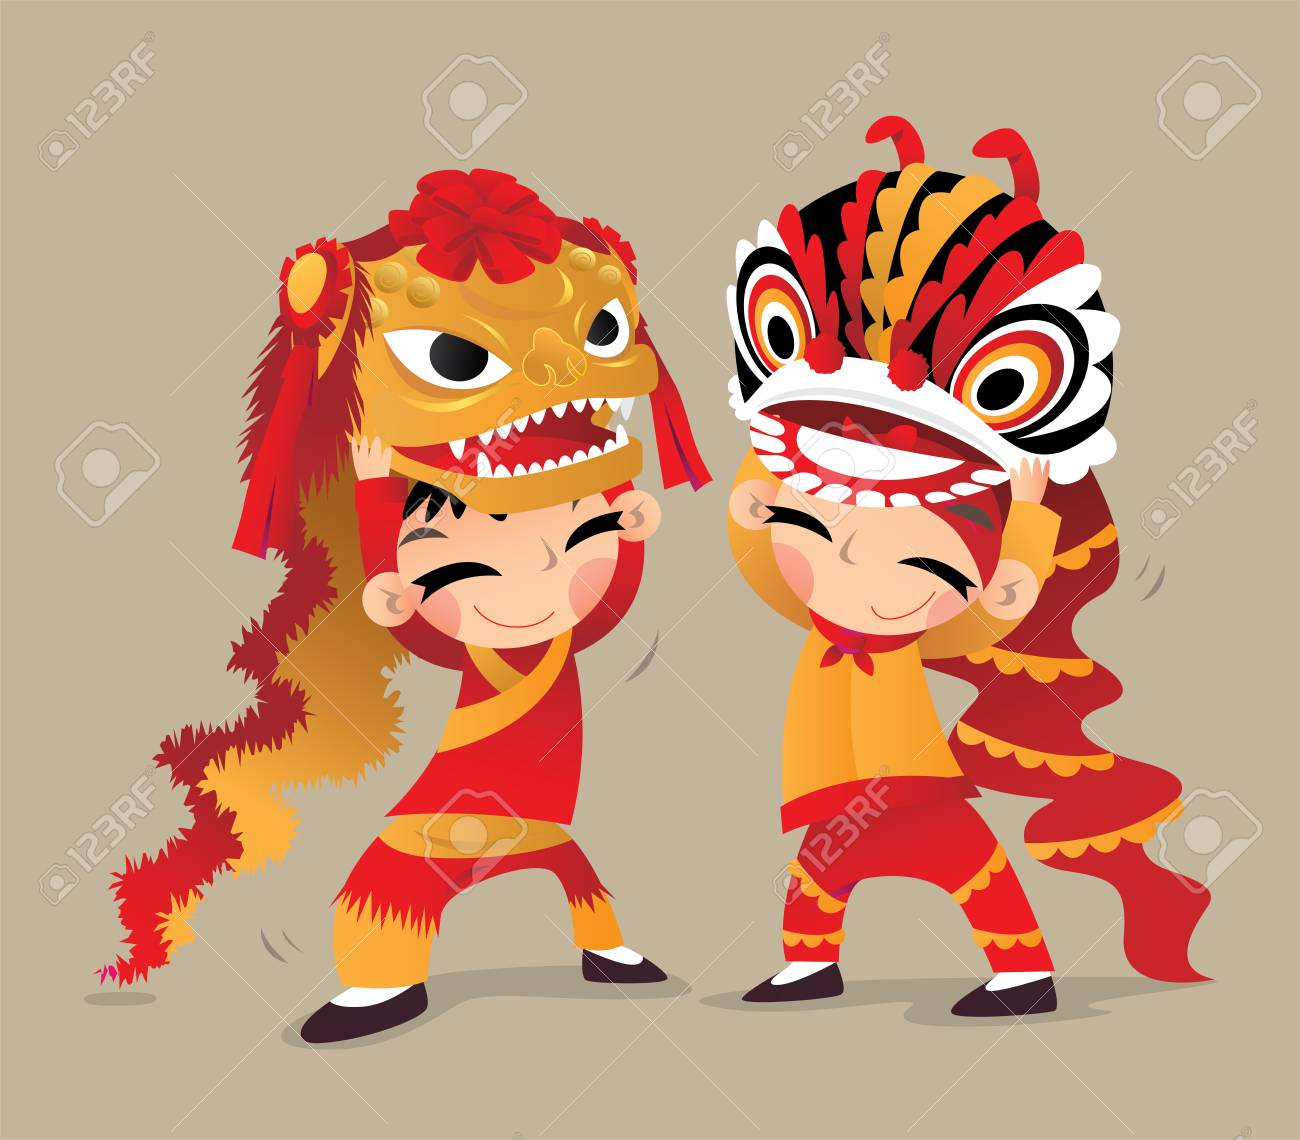 cfb749168 Two Chinese kids playing the Northern and the Southern Lion Dances Stock  Vector - 89981223